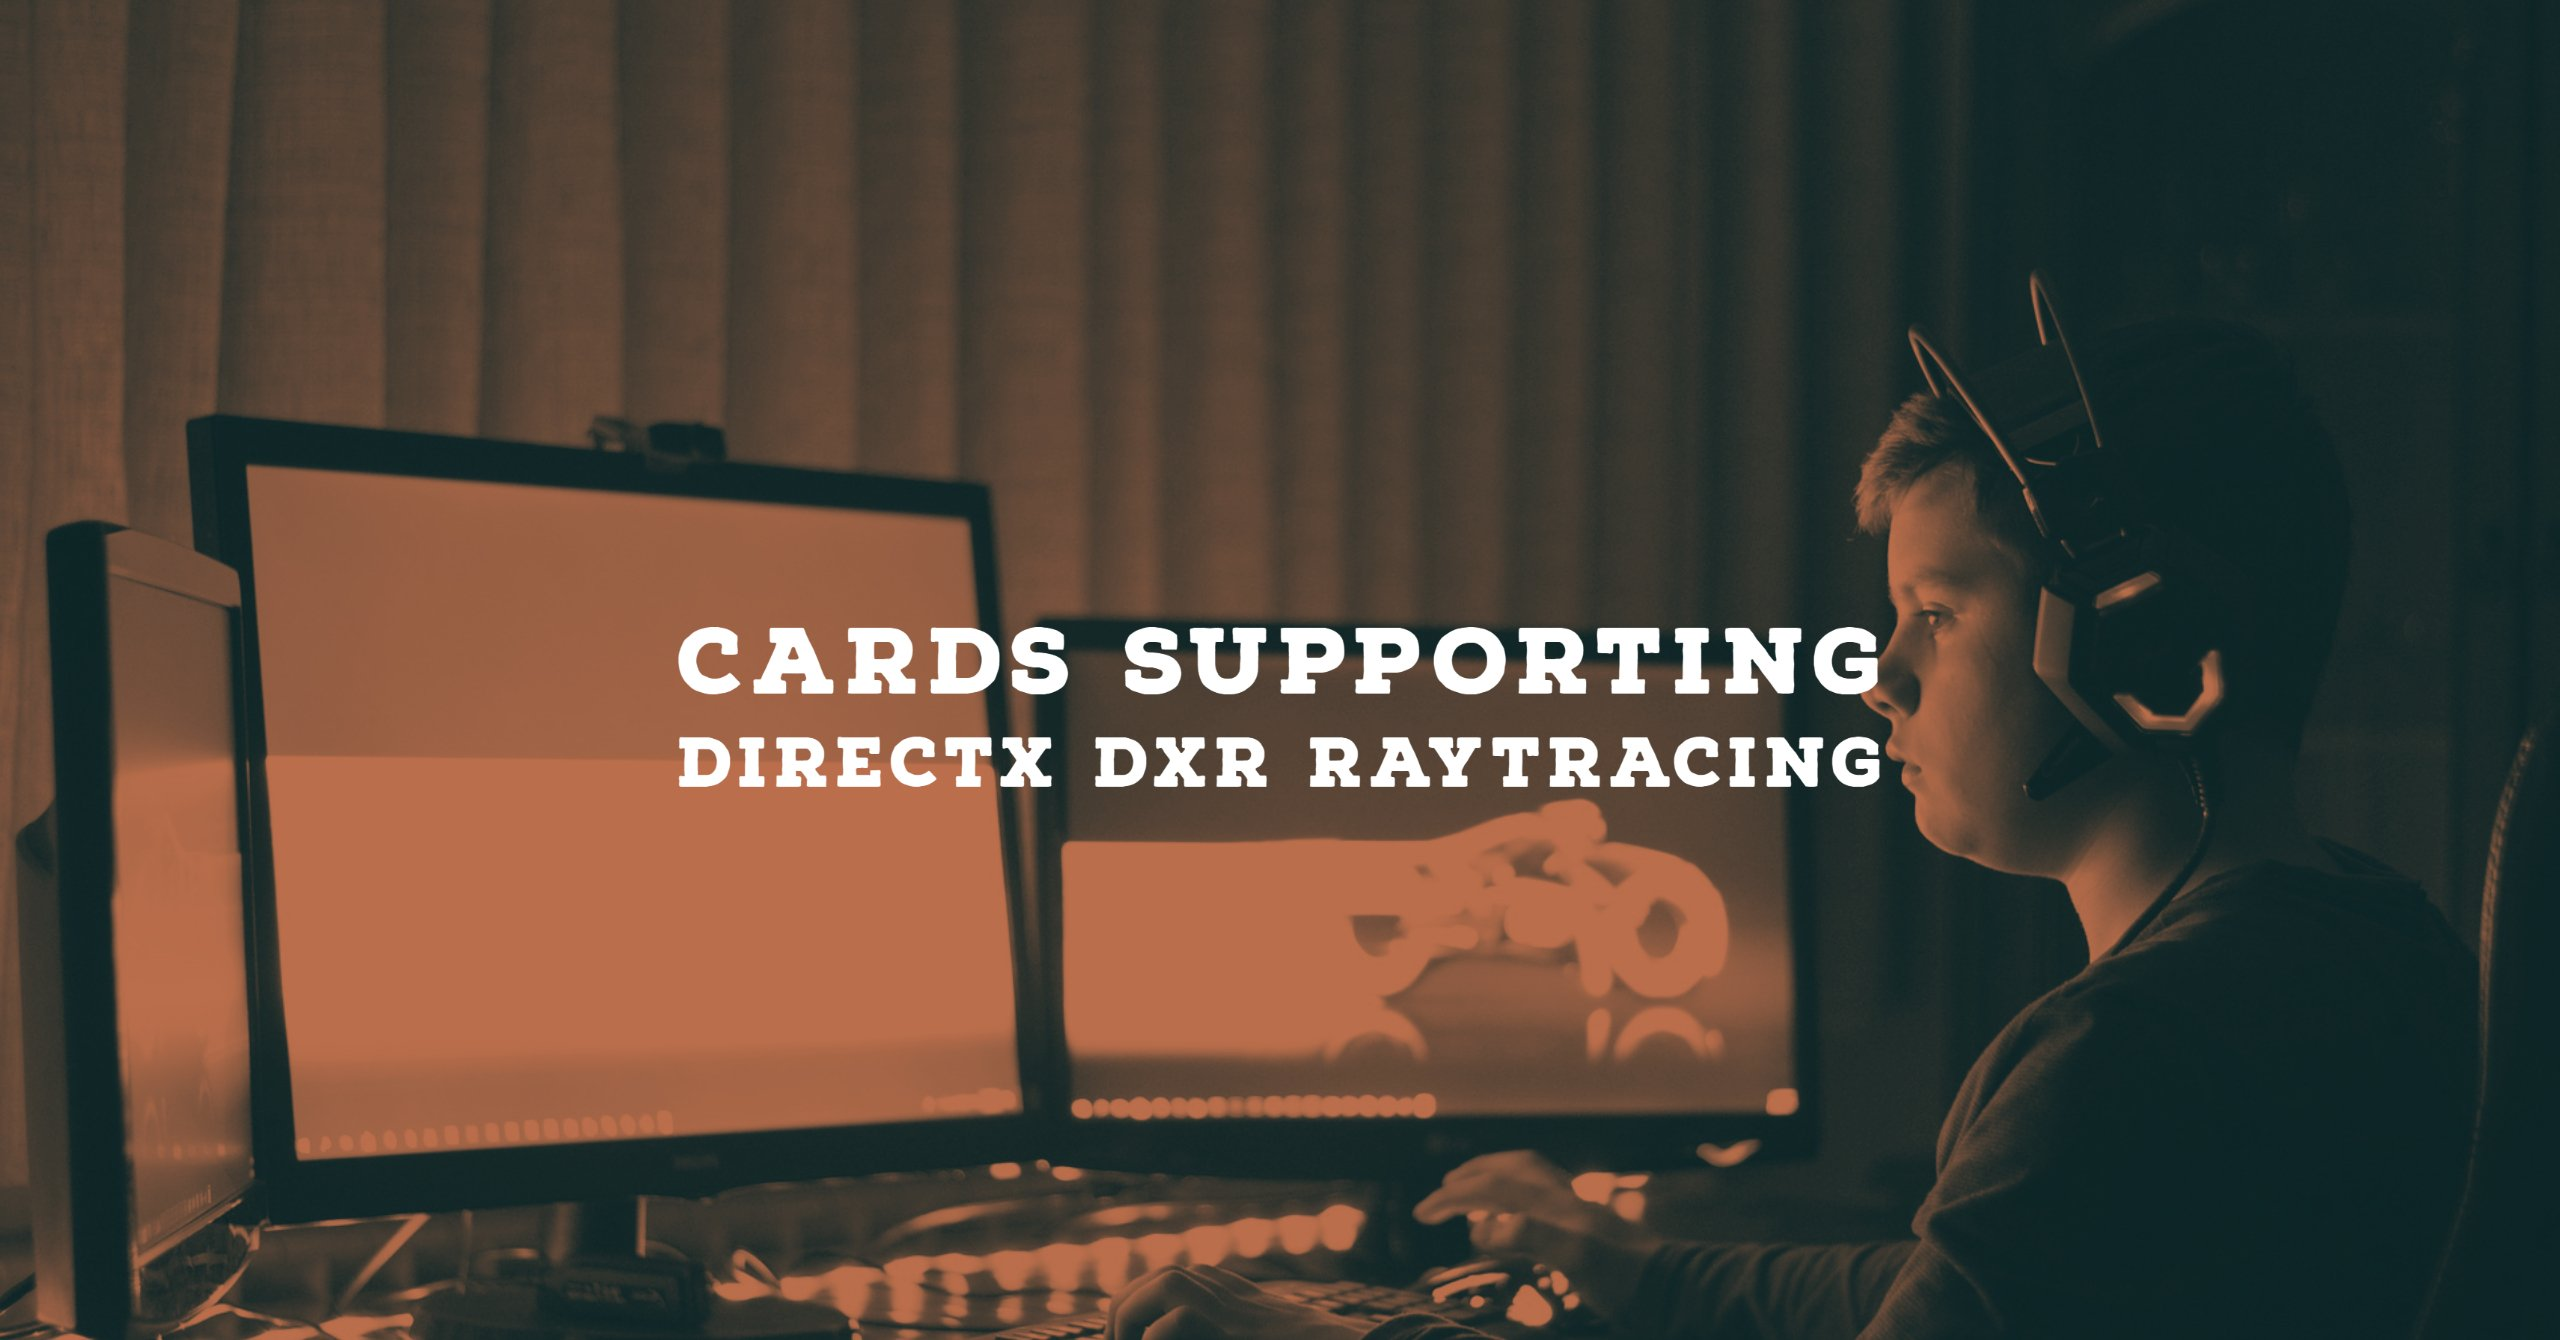 Cards supporting DirectX DXR Raytracing